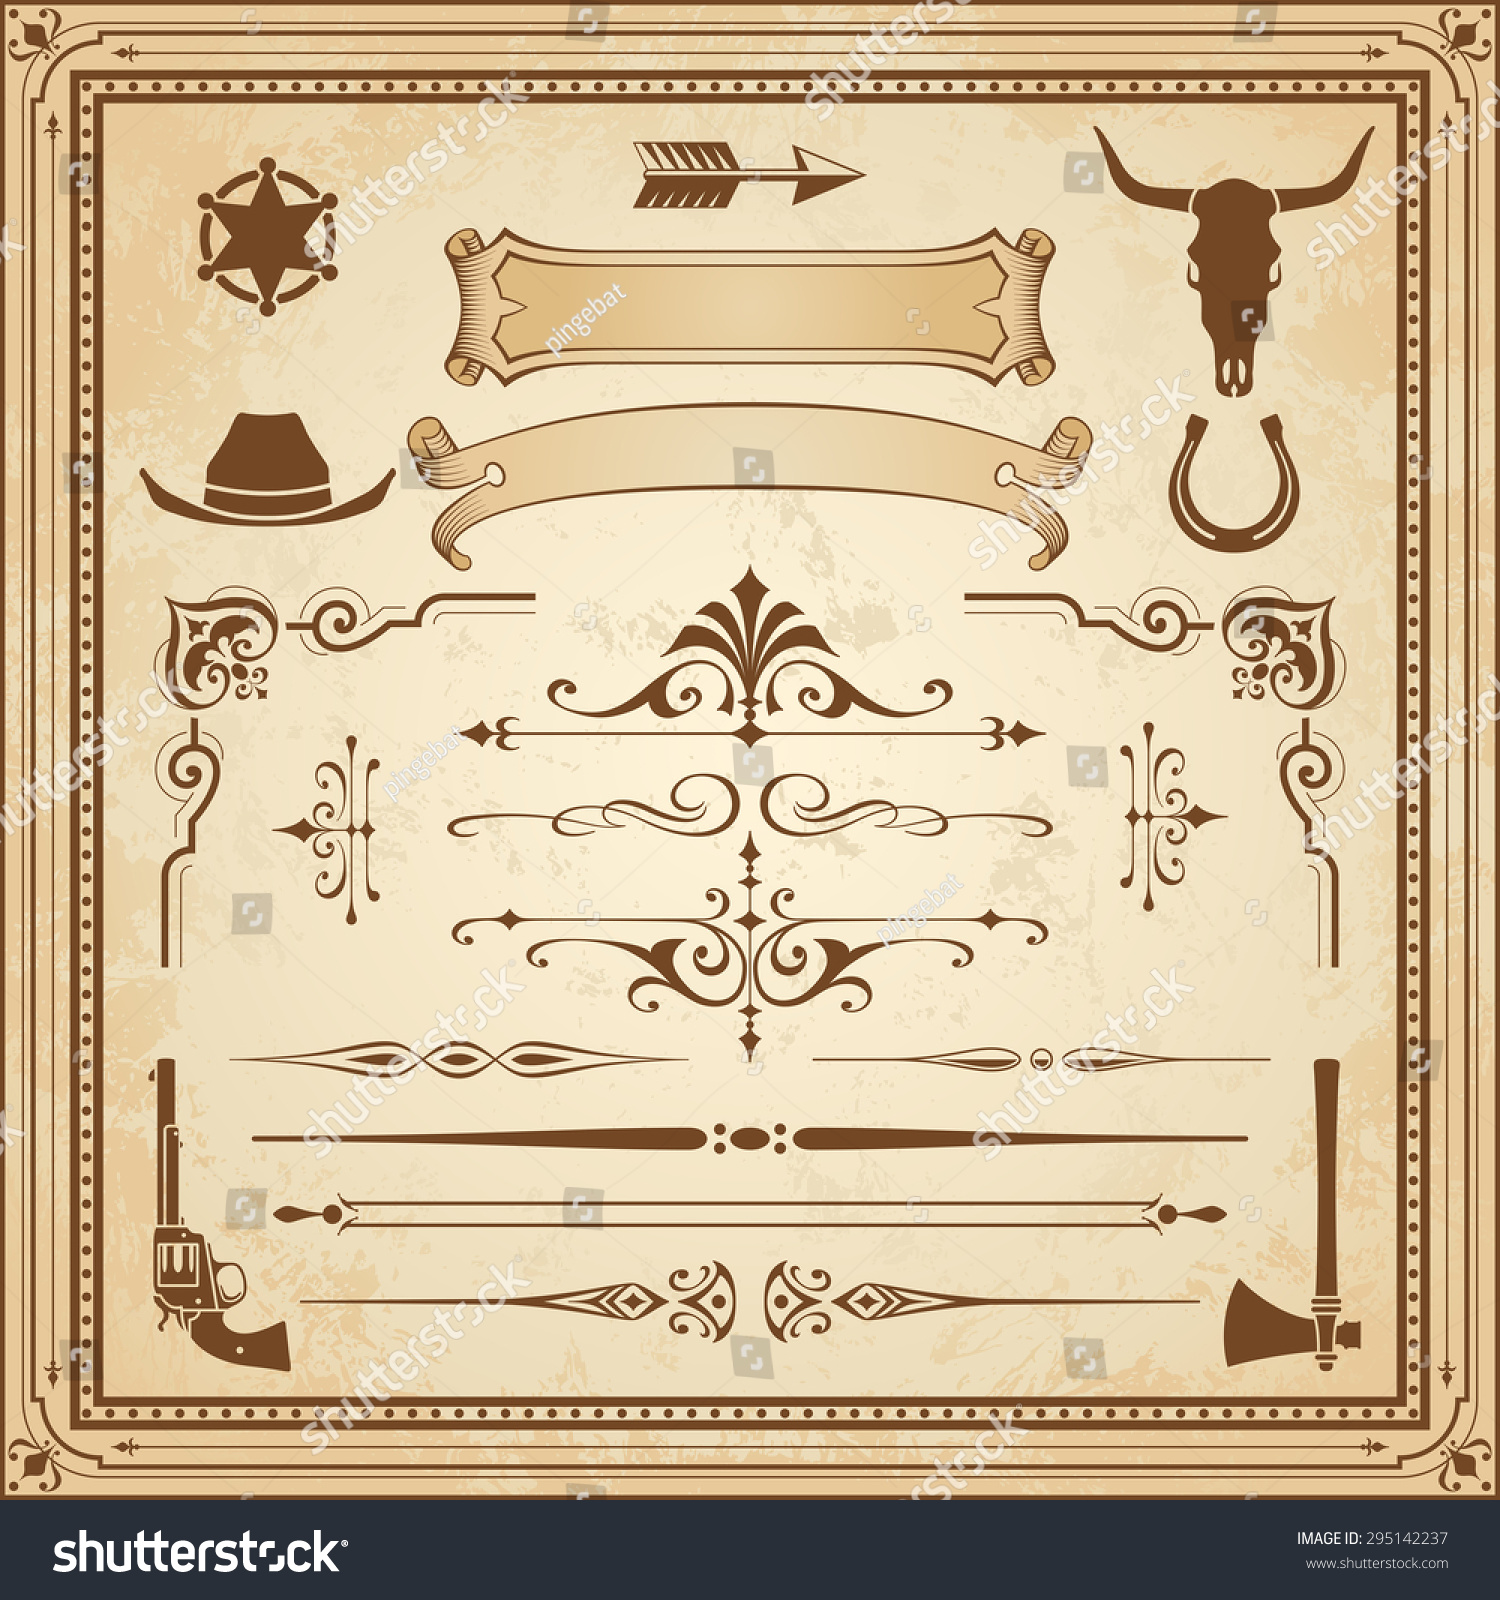 Collection Wild West Ornament Frames Rulers Stock Vector 295142237 ...